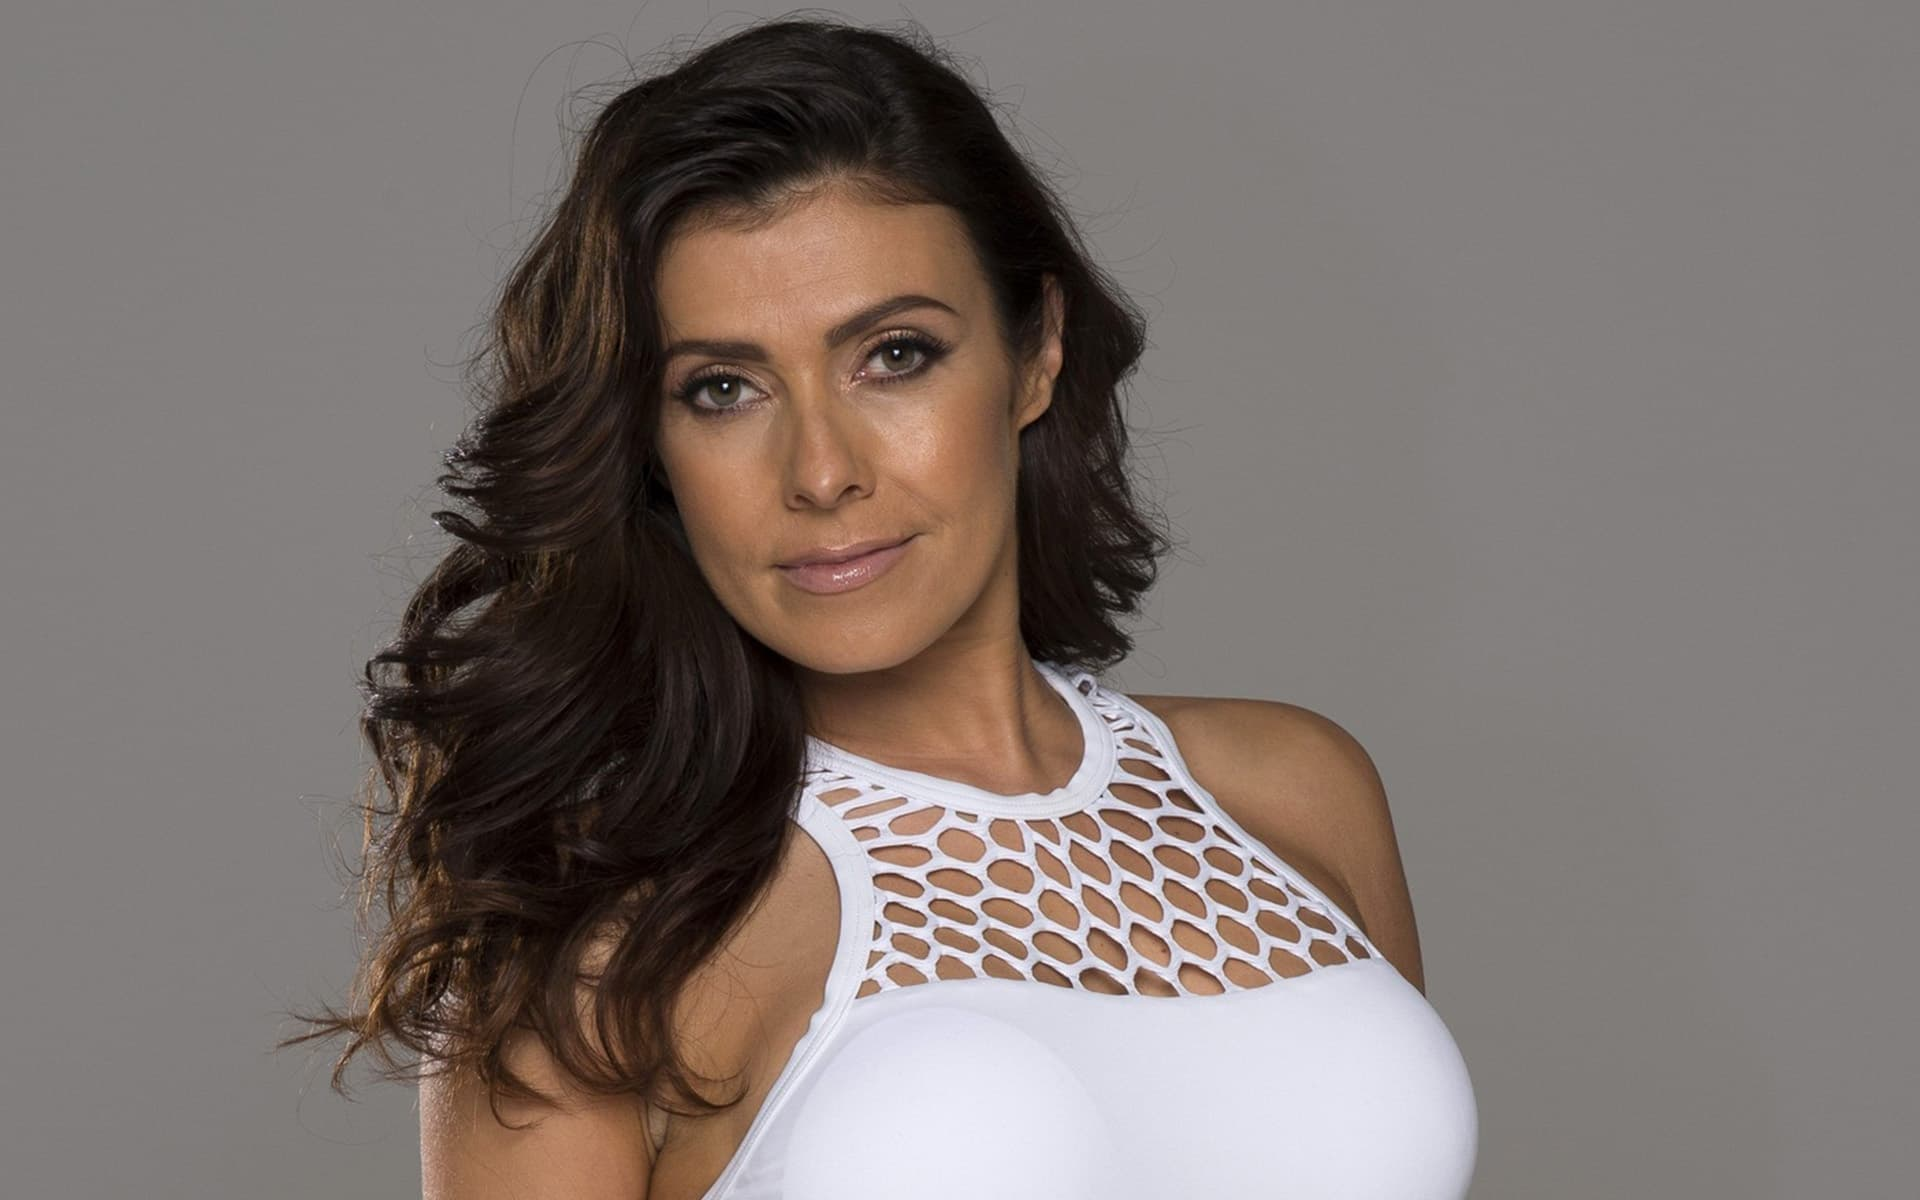 kym marsh desktop wallpaper 60785